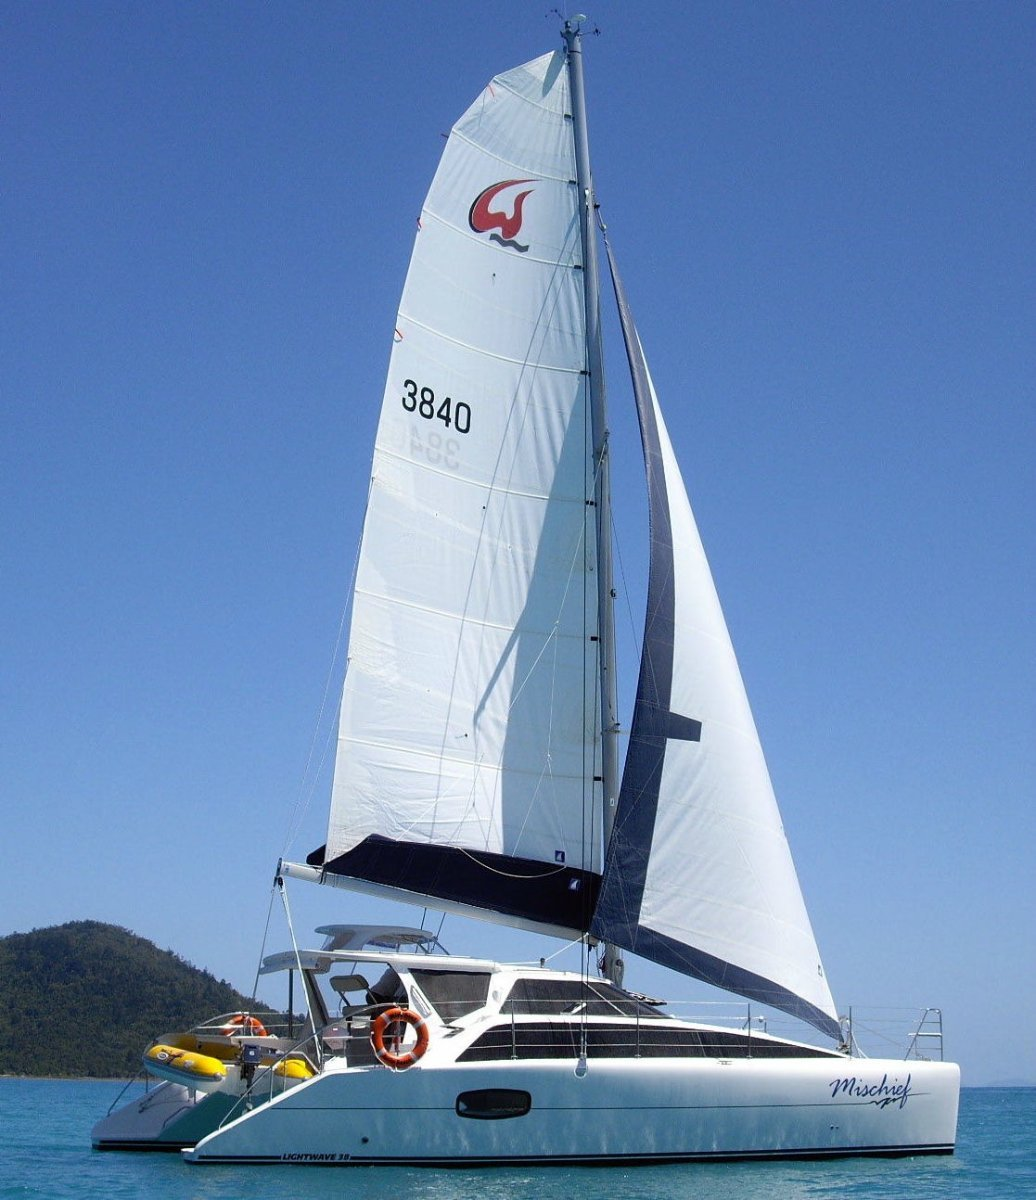 Lightwave 38 Whitsunday Bareboat 4yr contract:Mischief 38 Lightwave